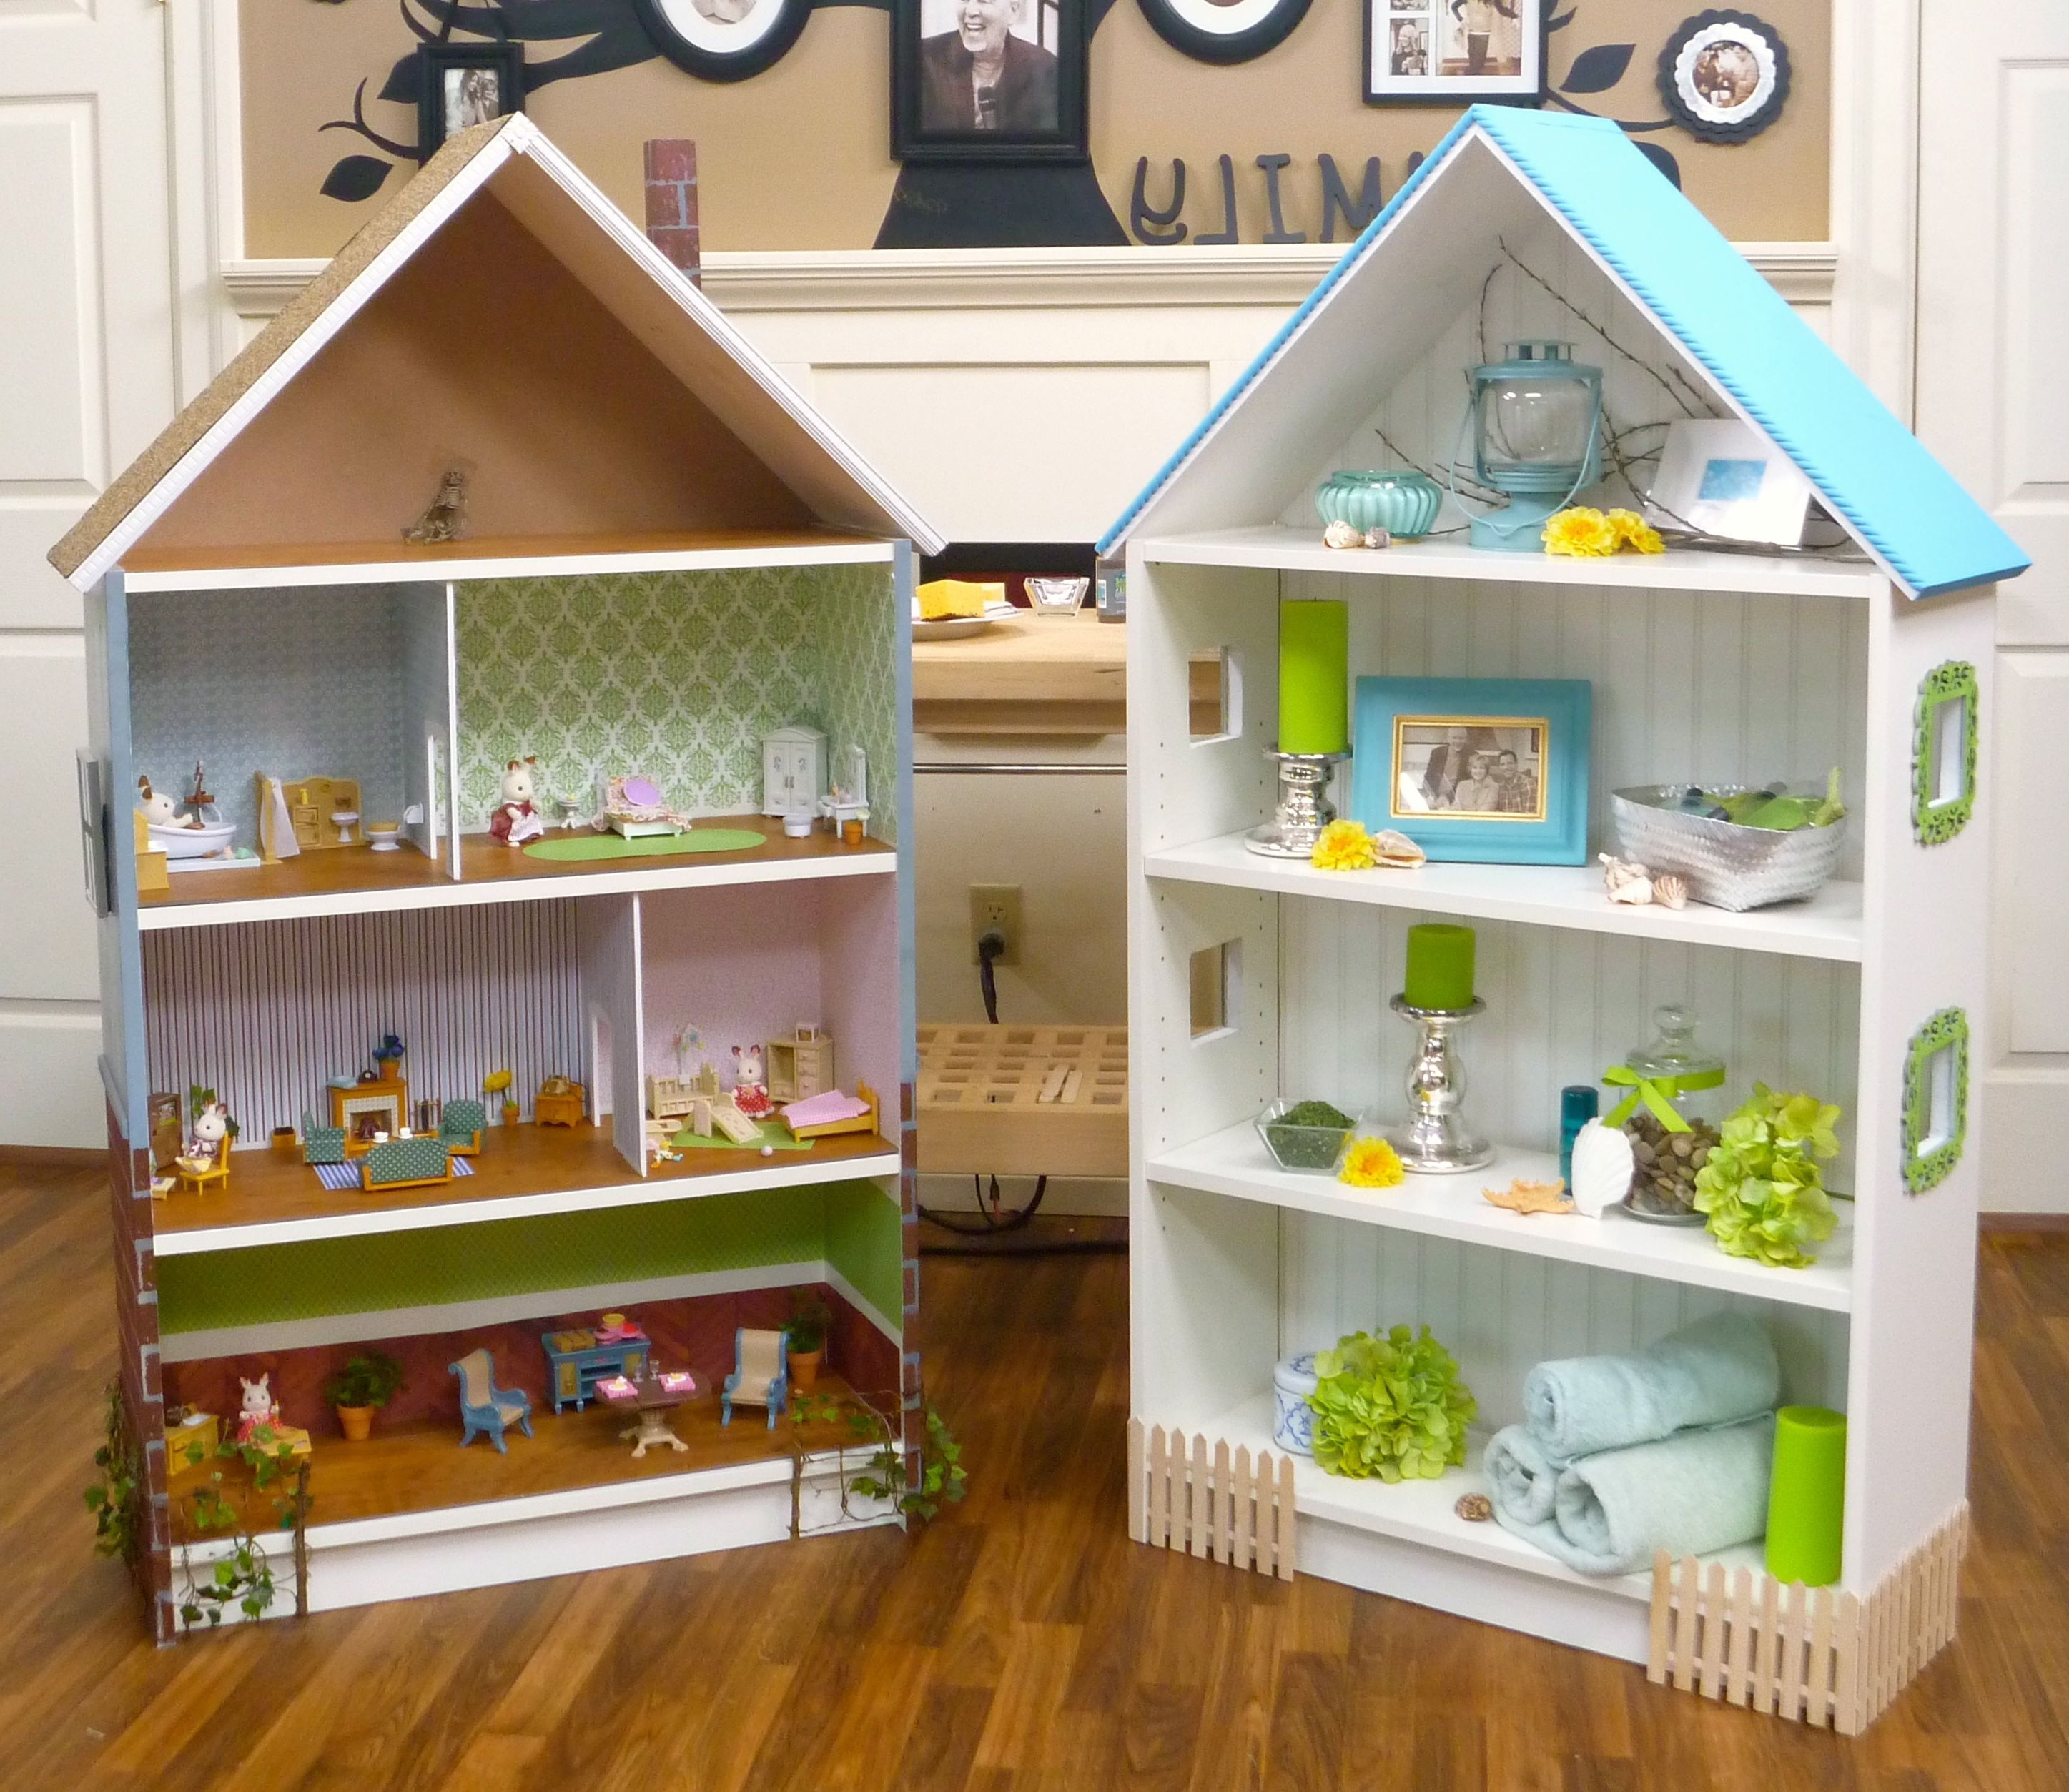 Dollhouse Bookcase: Beach Cottage, Brick Row House — Cute Ikea Within Famous Dollhouse Bookcases (View 7 of 15)